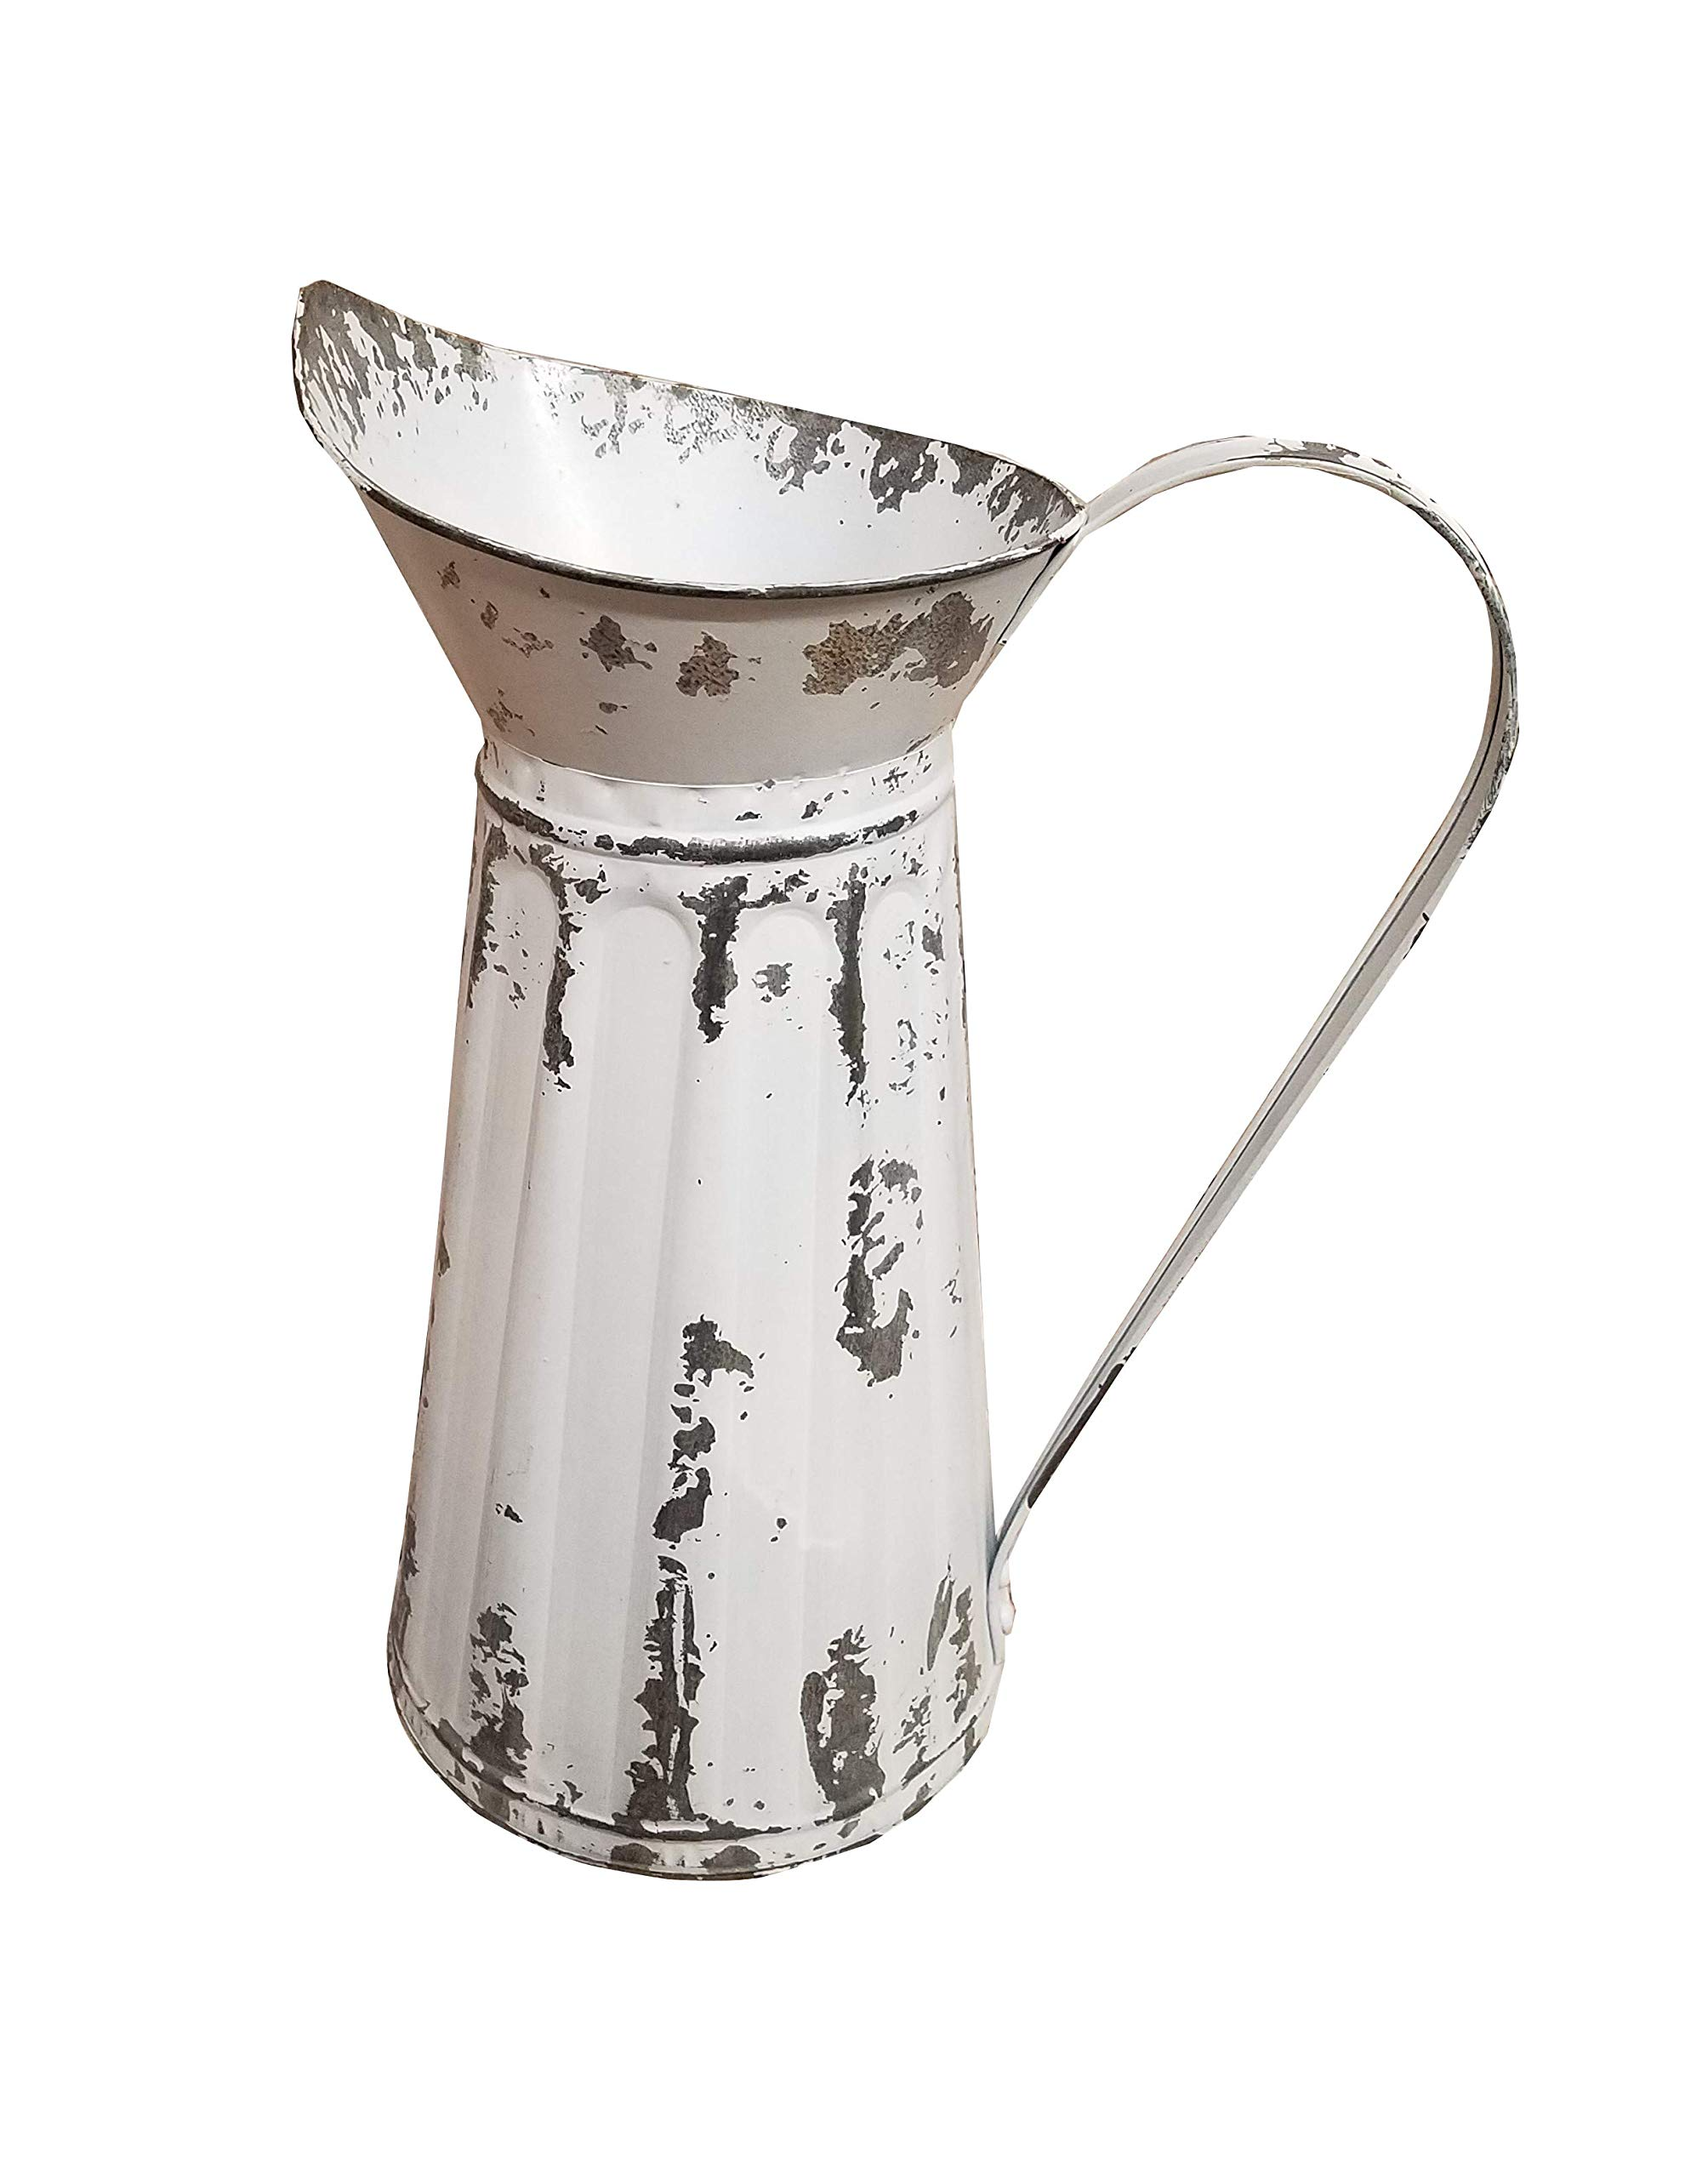 AT Vintage White Chipped Metal 15 Inch Pitcher Home Patio Decor by AT